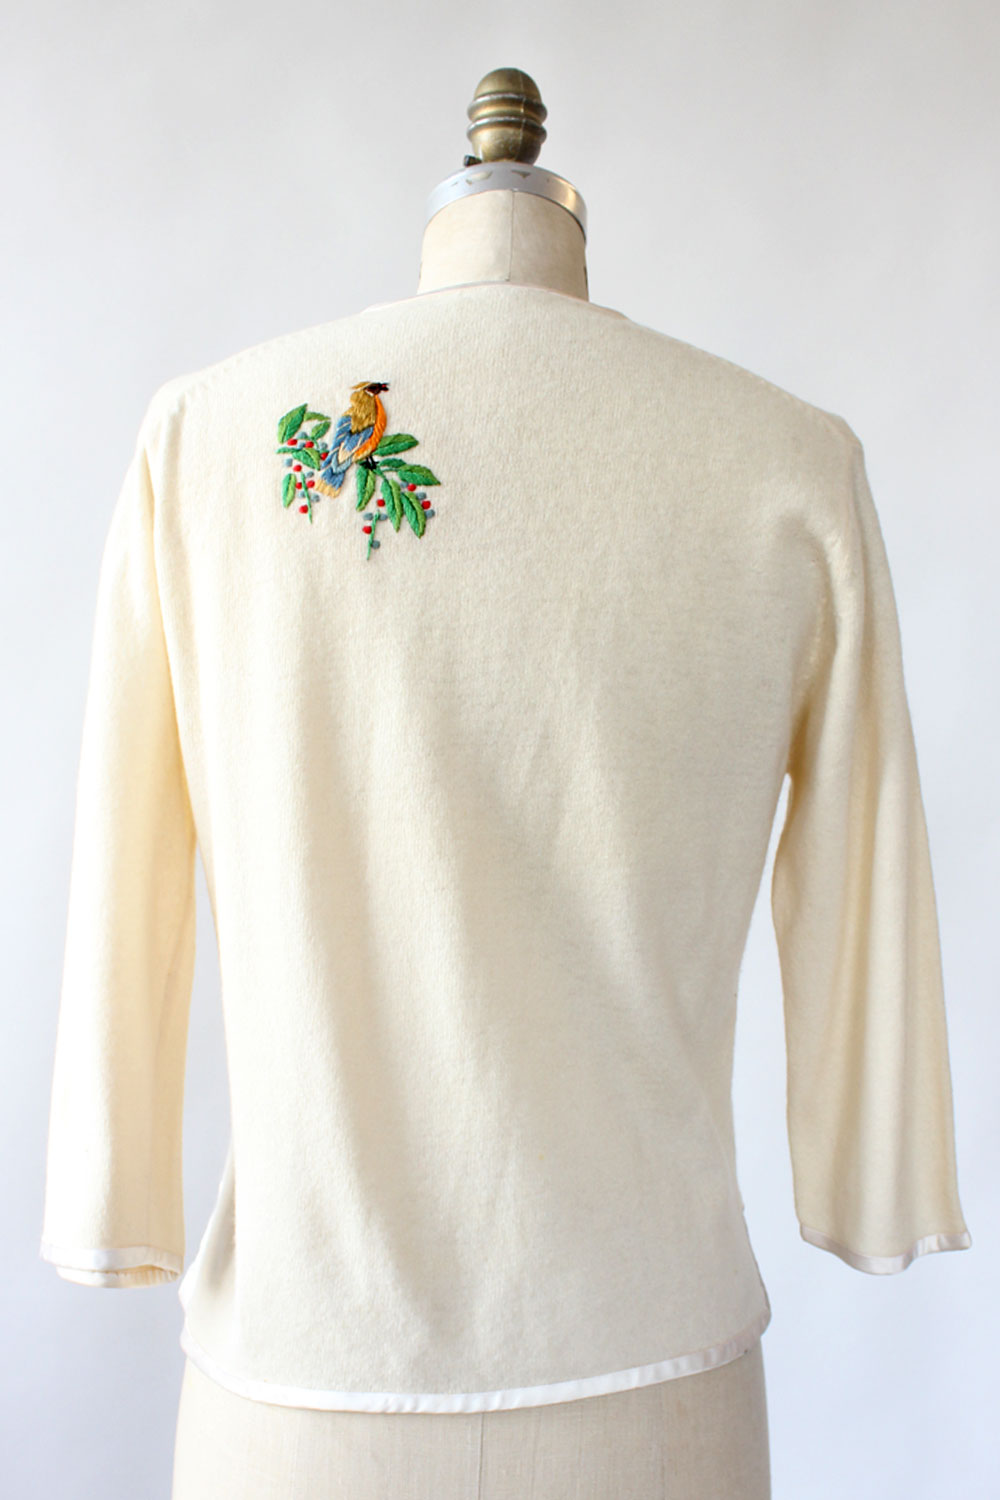 Songbird Embroidered Cardigan S/M